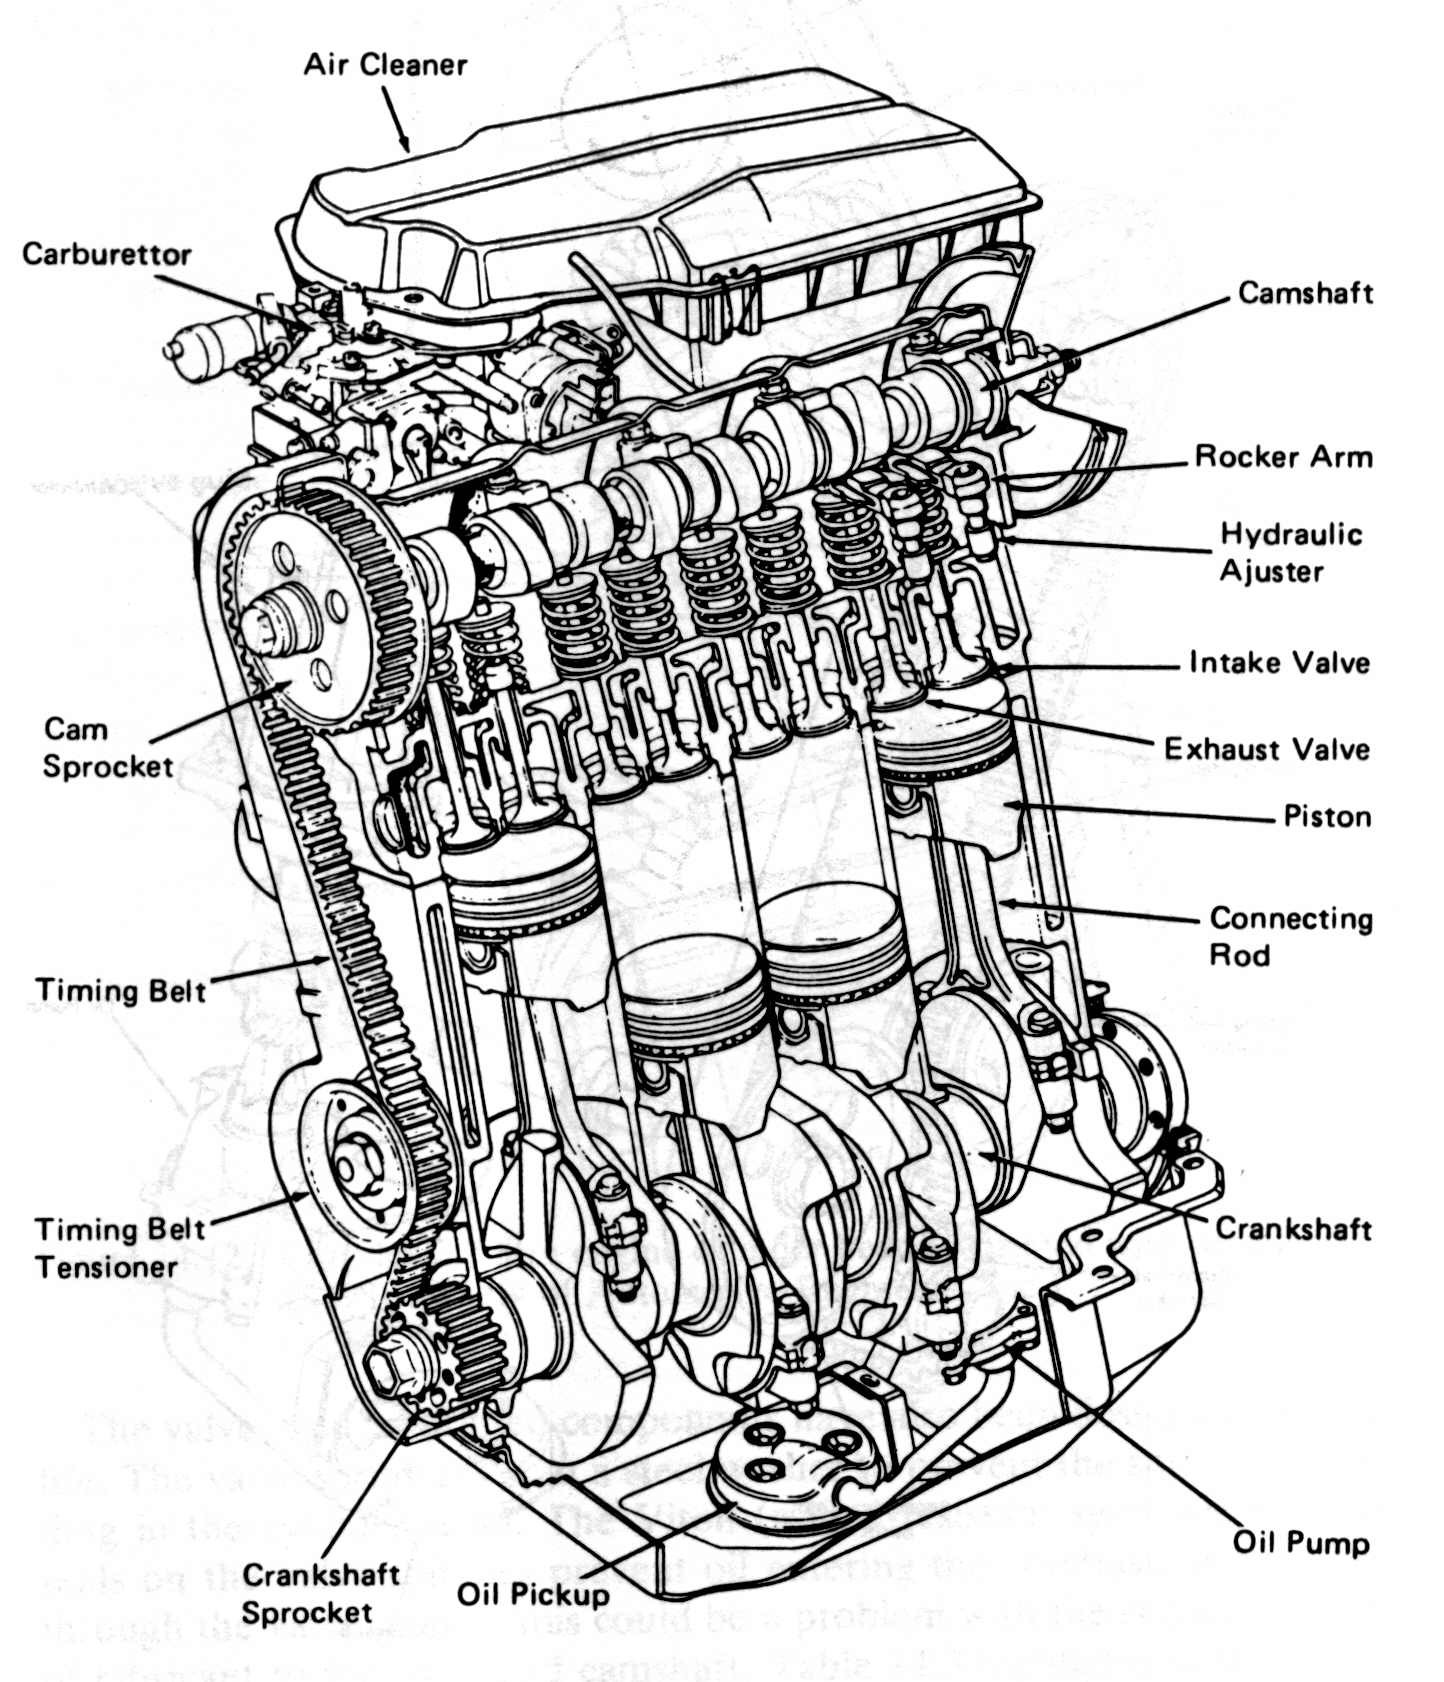 Diesel Engine Diagram Labeled Car Engine Diagram for Dummies Amazing ...